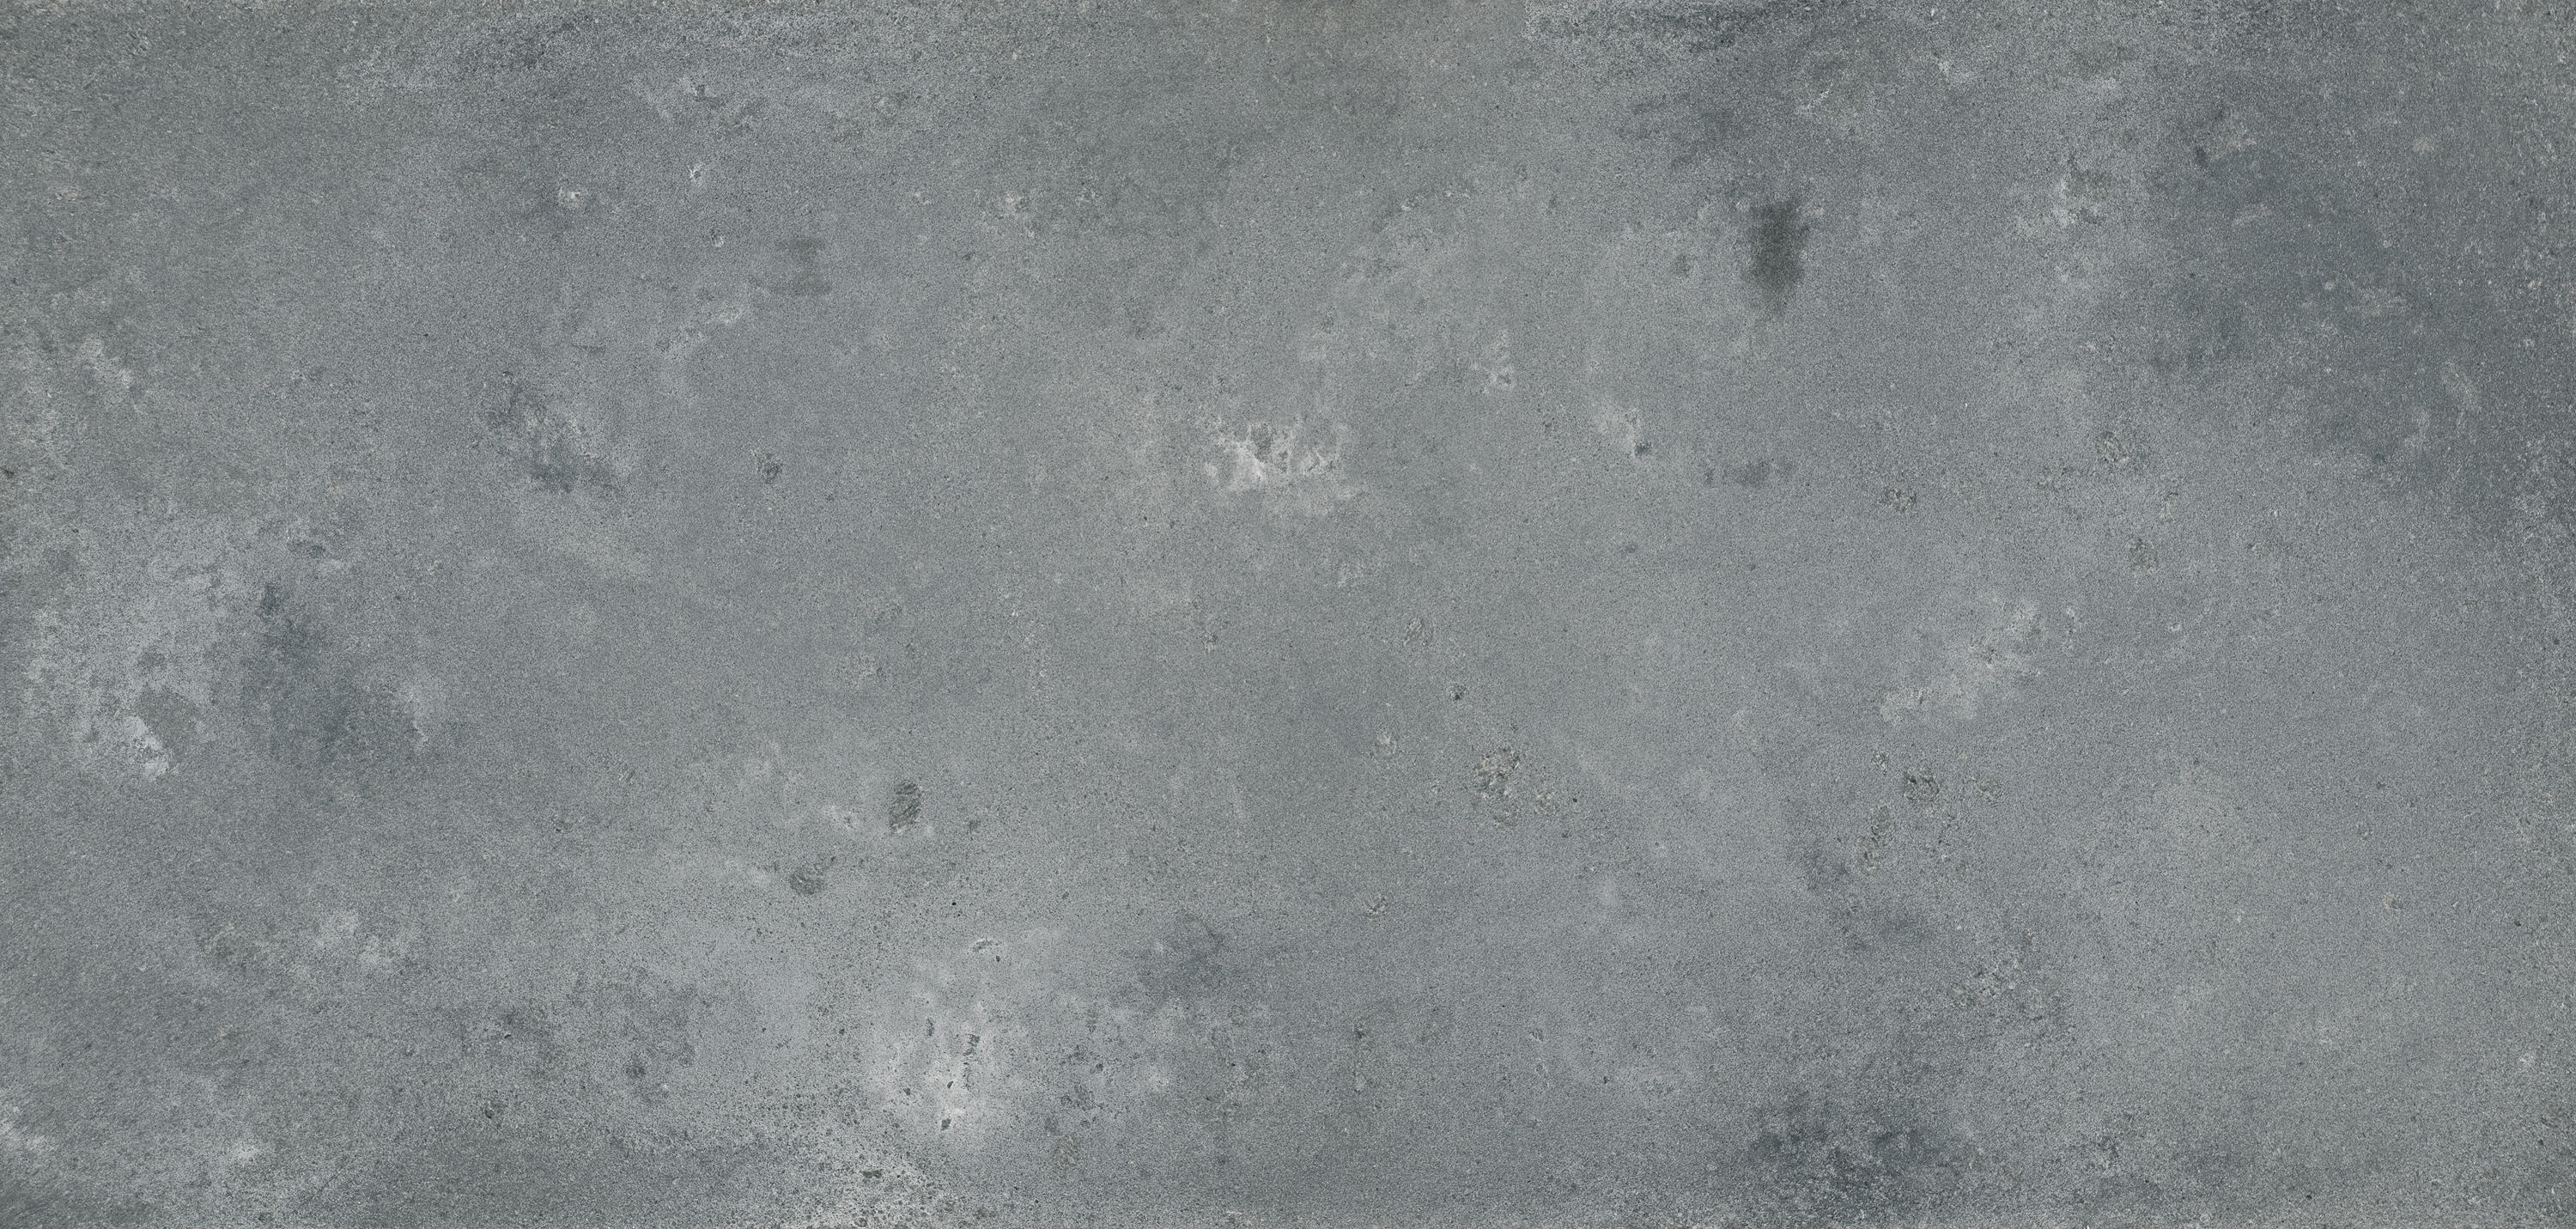 RUGGED CONCRETE - Mineral composite panels from Caesarstone | Architonic